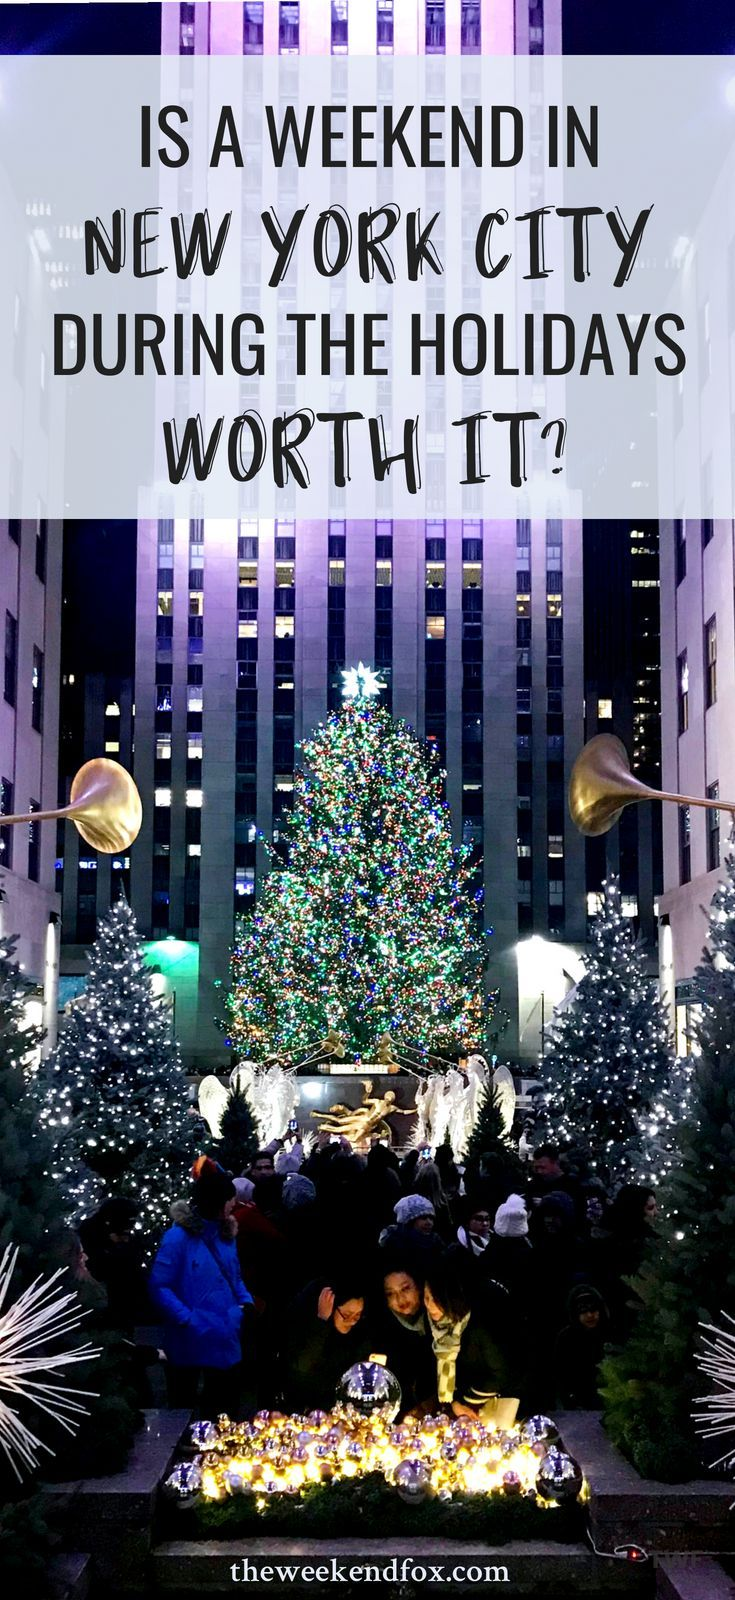 Is A Weekend In New York City During The Holidays Worth It